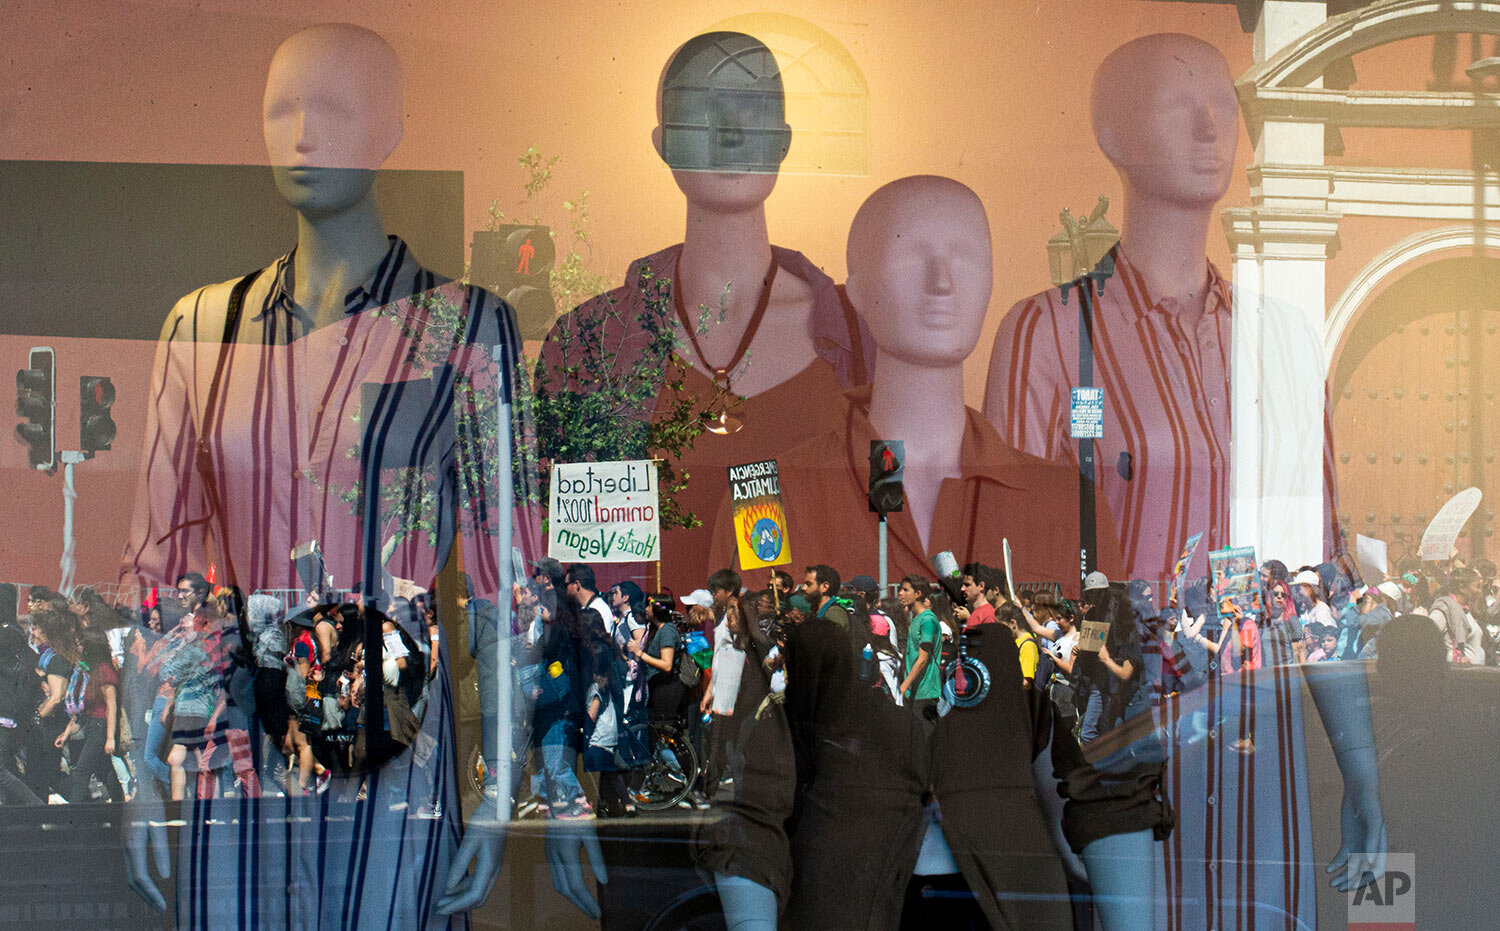 Demonstrators taking part in a global protest on climate change are reflected in a clothing store window, in Santiago, Chile, Friday, Sept. 20, 2019. Across the globe, hundreds of thousands took to the streets to demand that leaders tackle climate change in the run-up to a U.N. summit. (AP Photo/Esteban Felix)